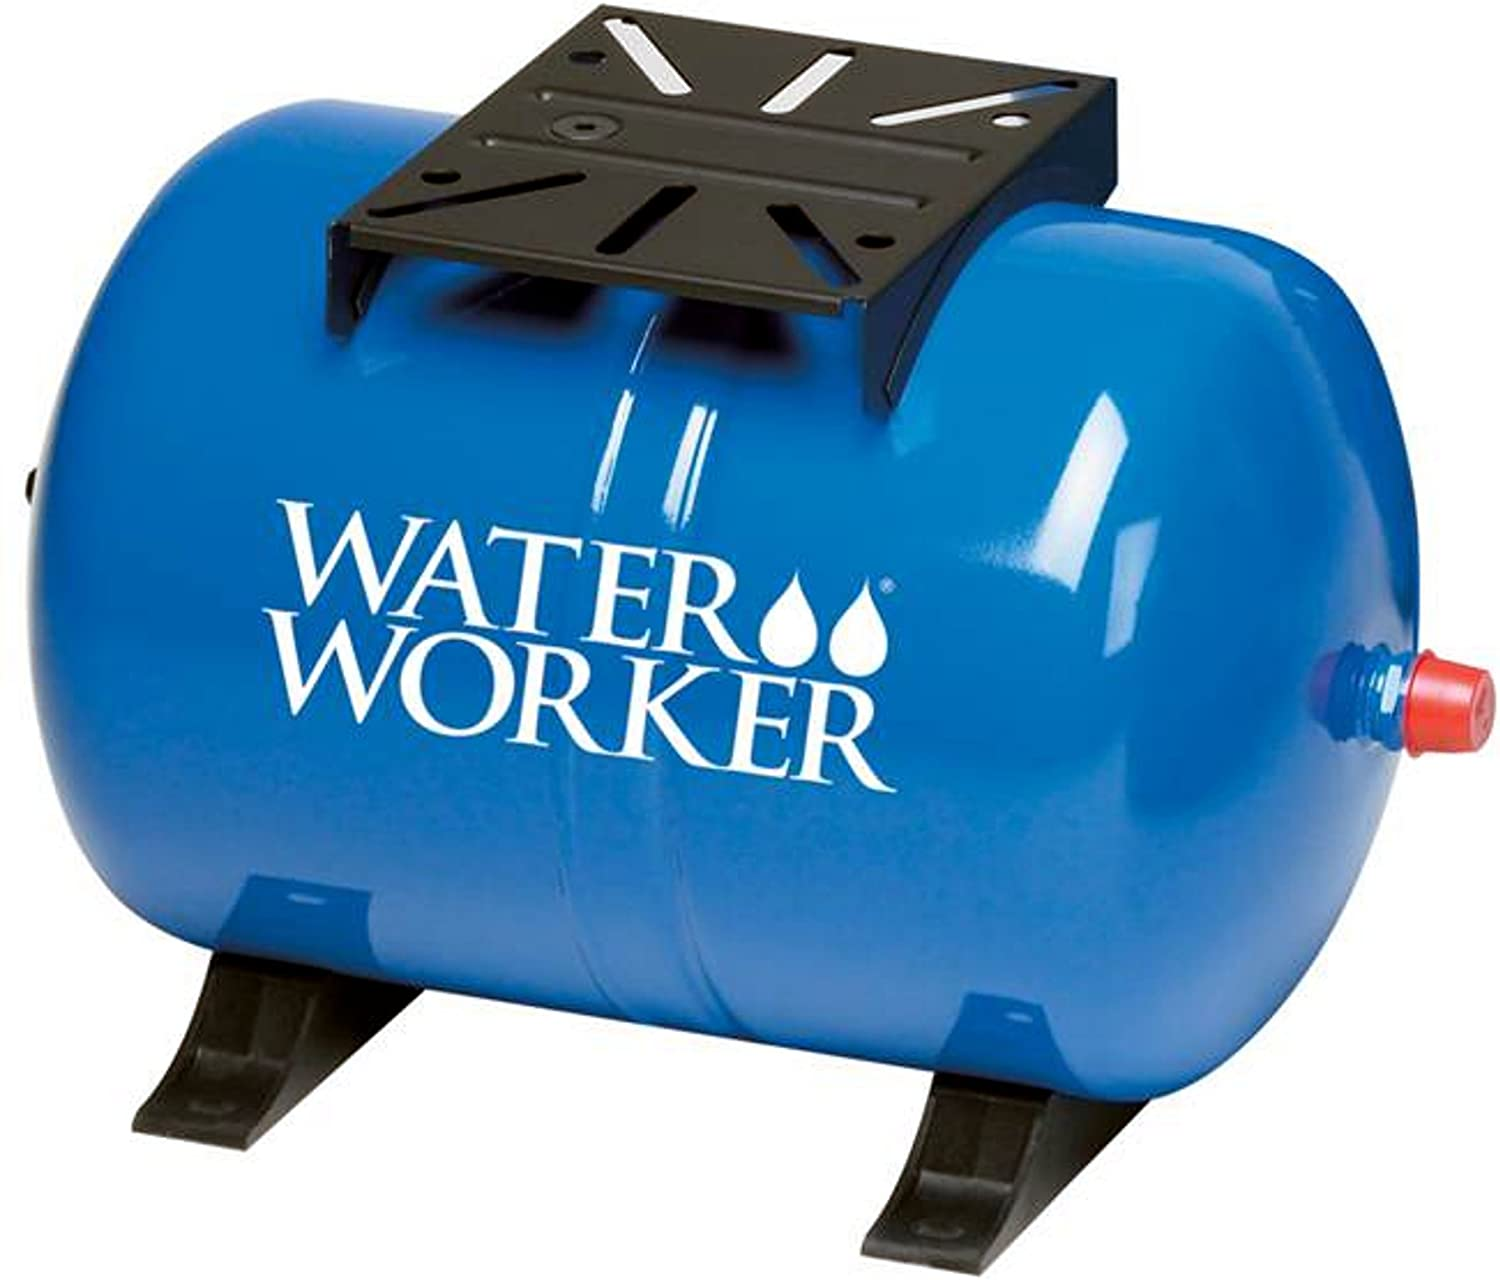 WaterWorker HT-14HB Water Worker Horizontal Pre-Charged Well Tank, 14 Gal, 1 In Mnpt, 100 Psi, Steel, Blue